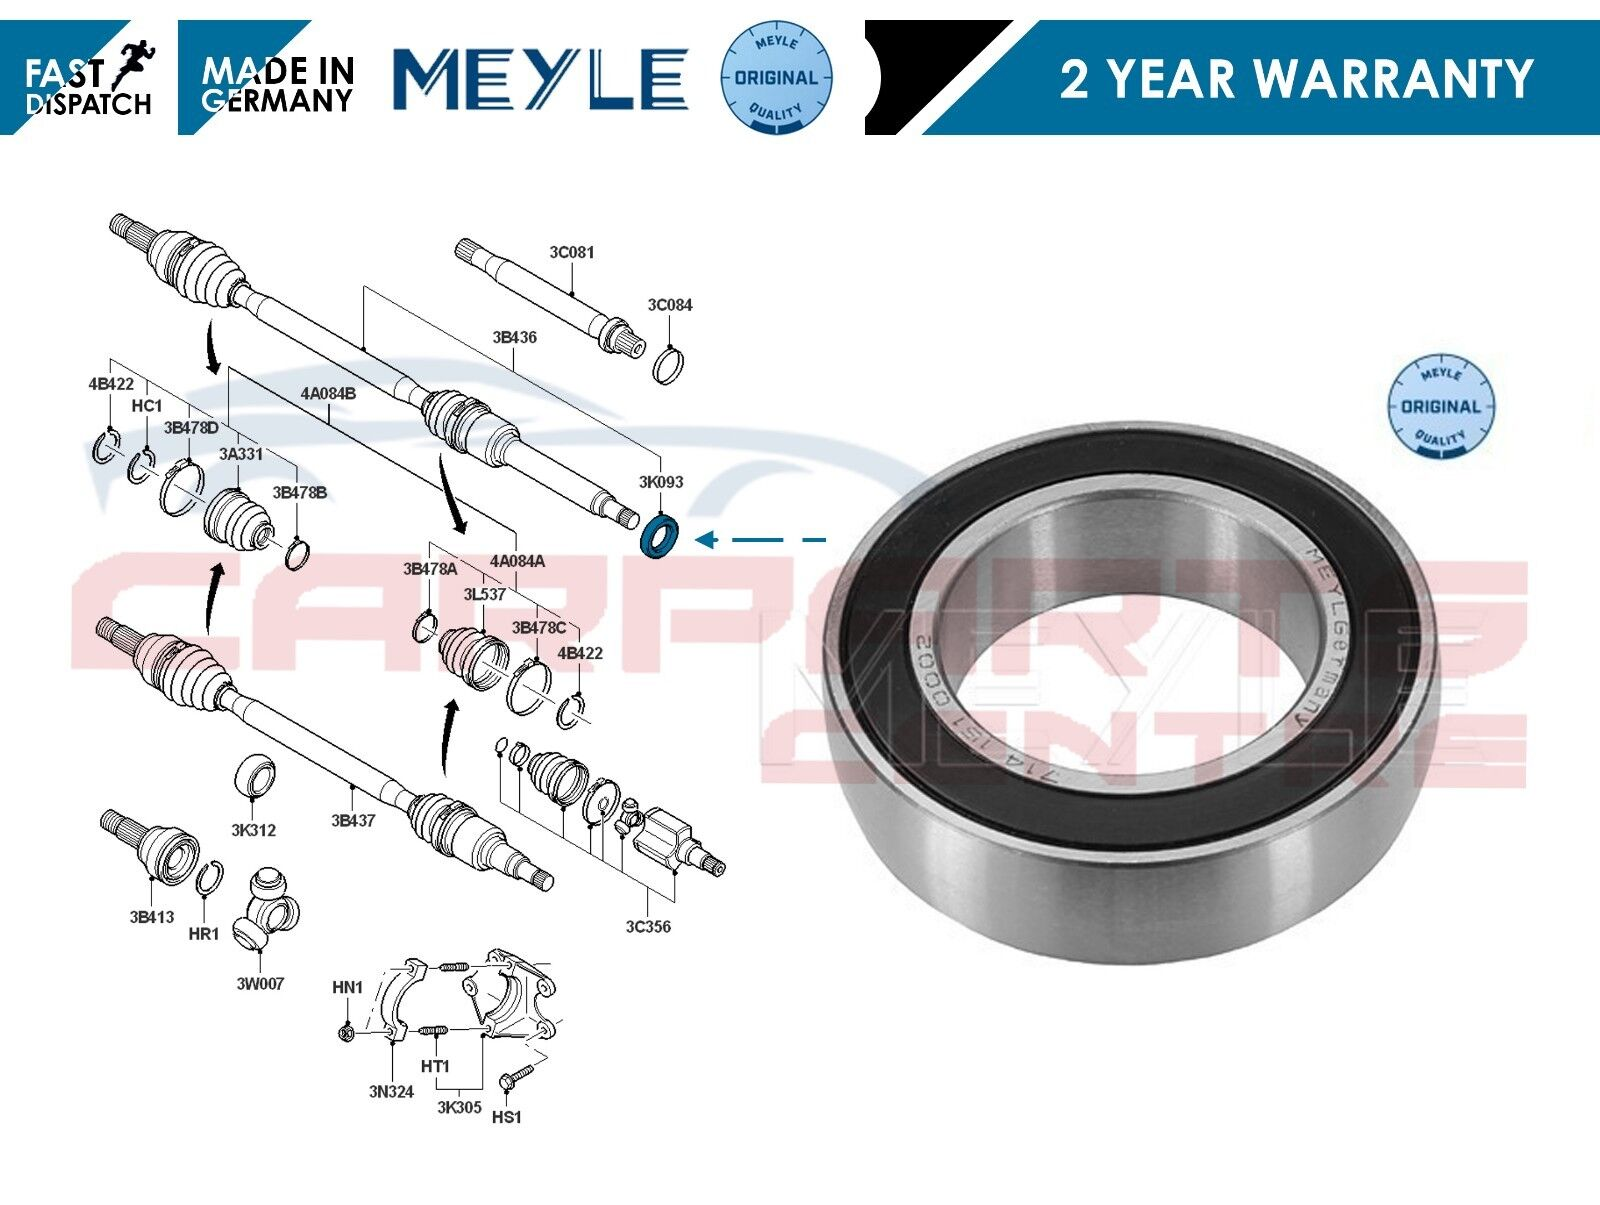 6 NEW OE QUALITY FOR FORD FIESTA MK 5 FUSHION DRIVE SHAFT FRONT NEARSIDE